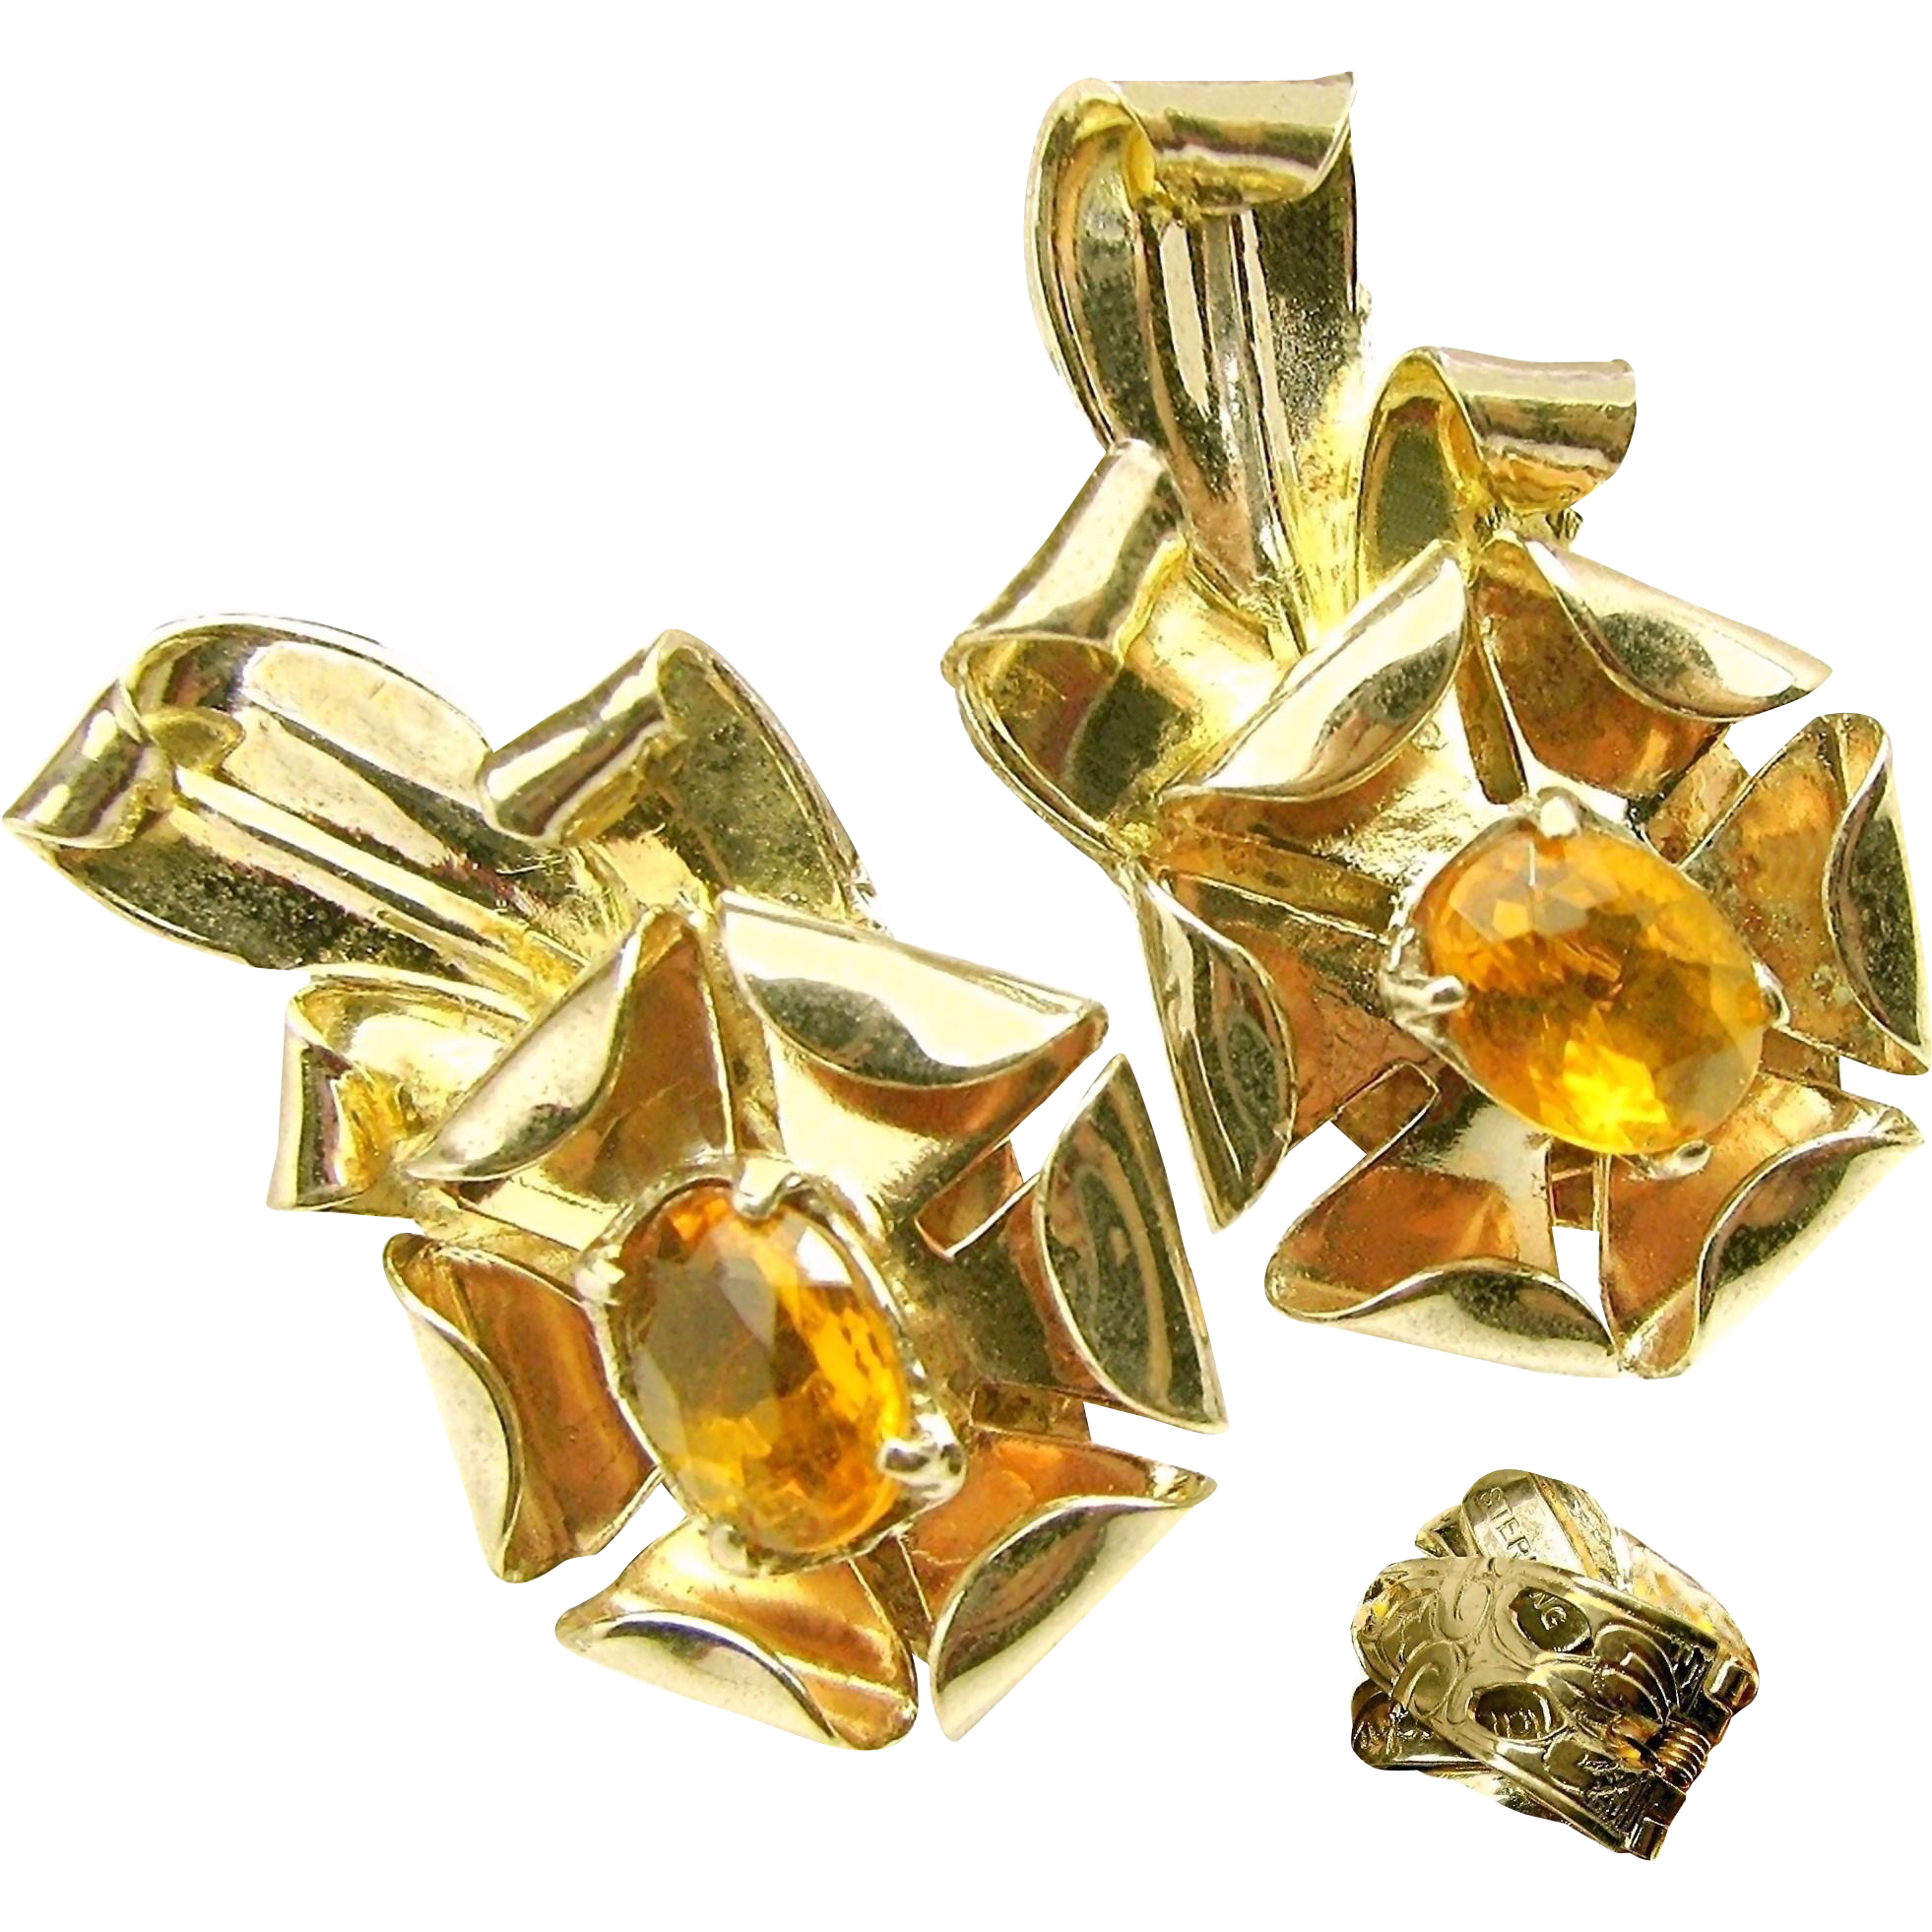 Vintage McCLELLAND BARCLAY Earrings Gold over Sterling w/ Glass Citrine c.1930's